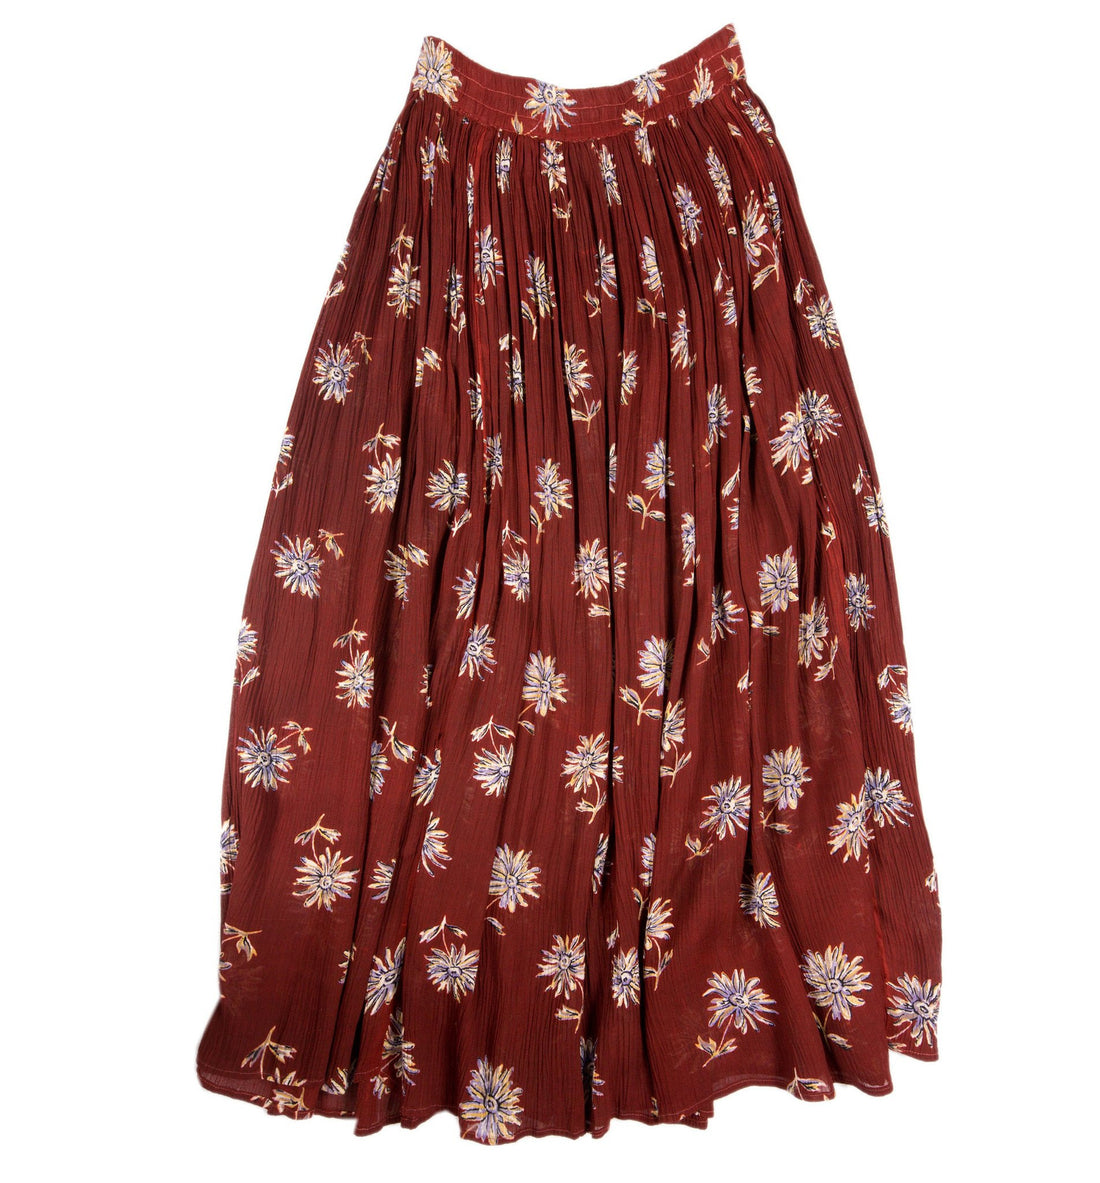 Vintage Red Floral Skirt - Vintage: Women's - Iron and Resin